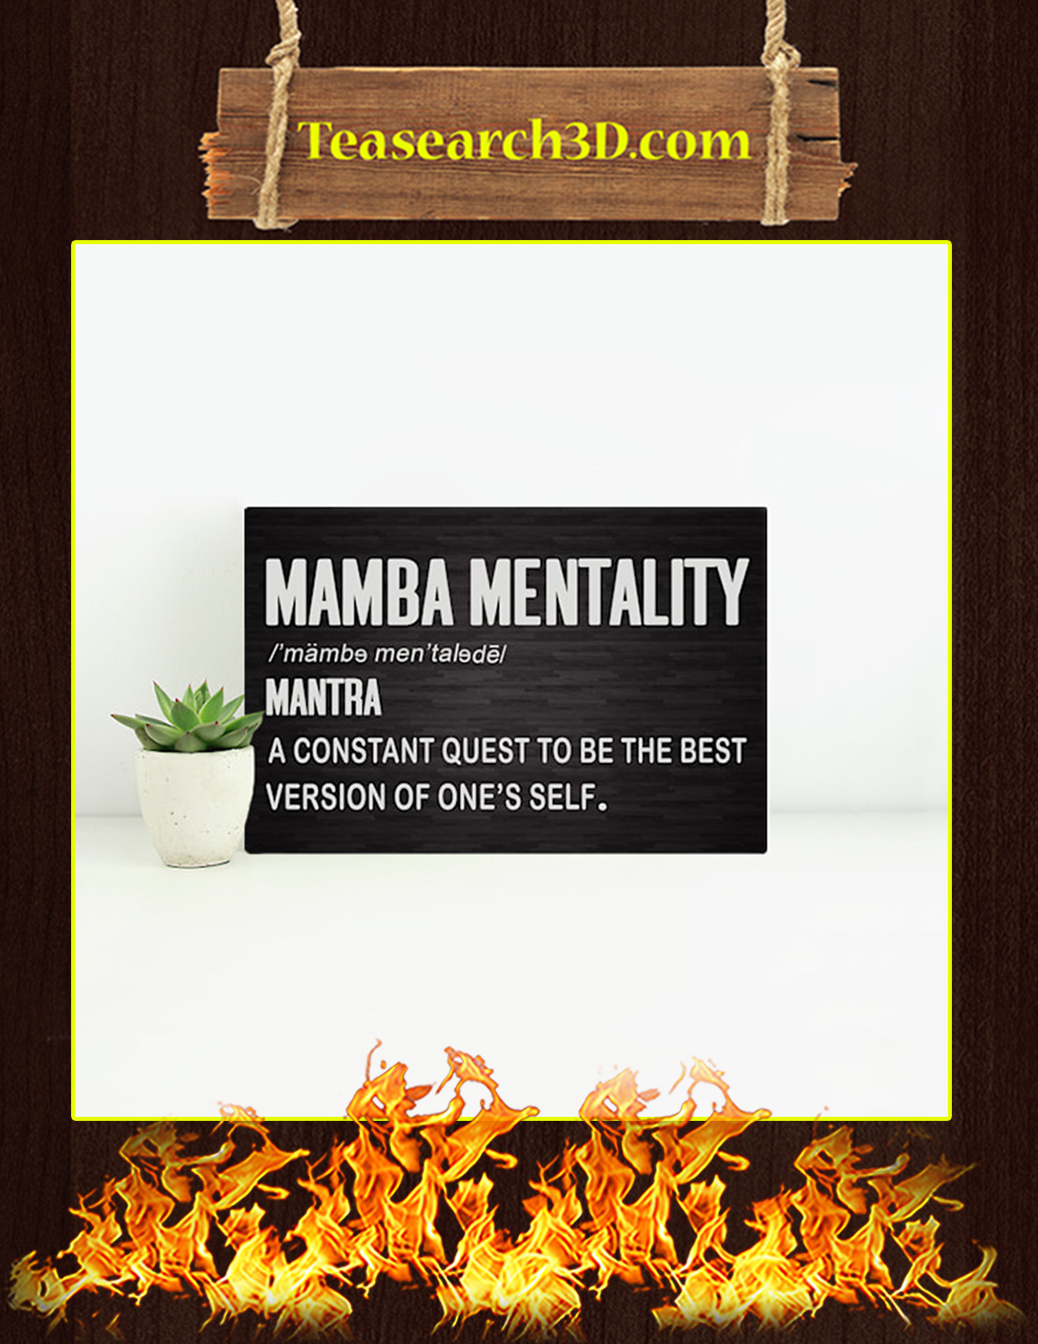 Mamba Mentality A Constant Quest To Be The Best Version Of One's Self Canvas Prints - Small